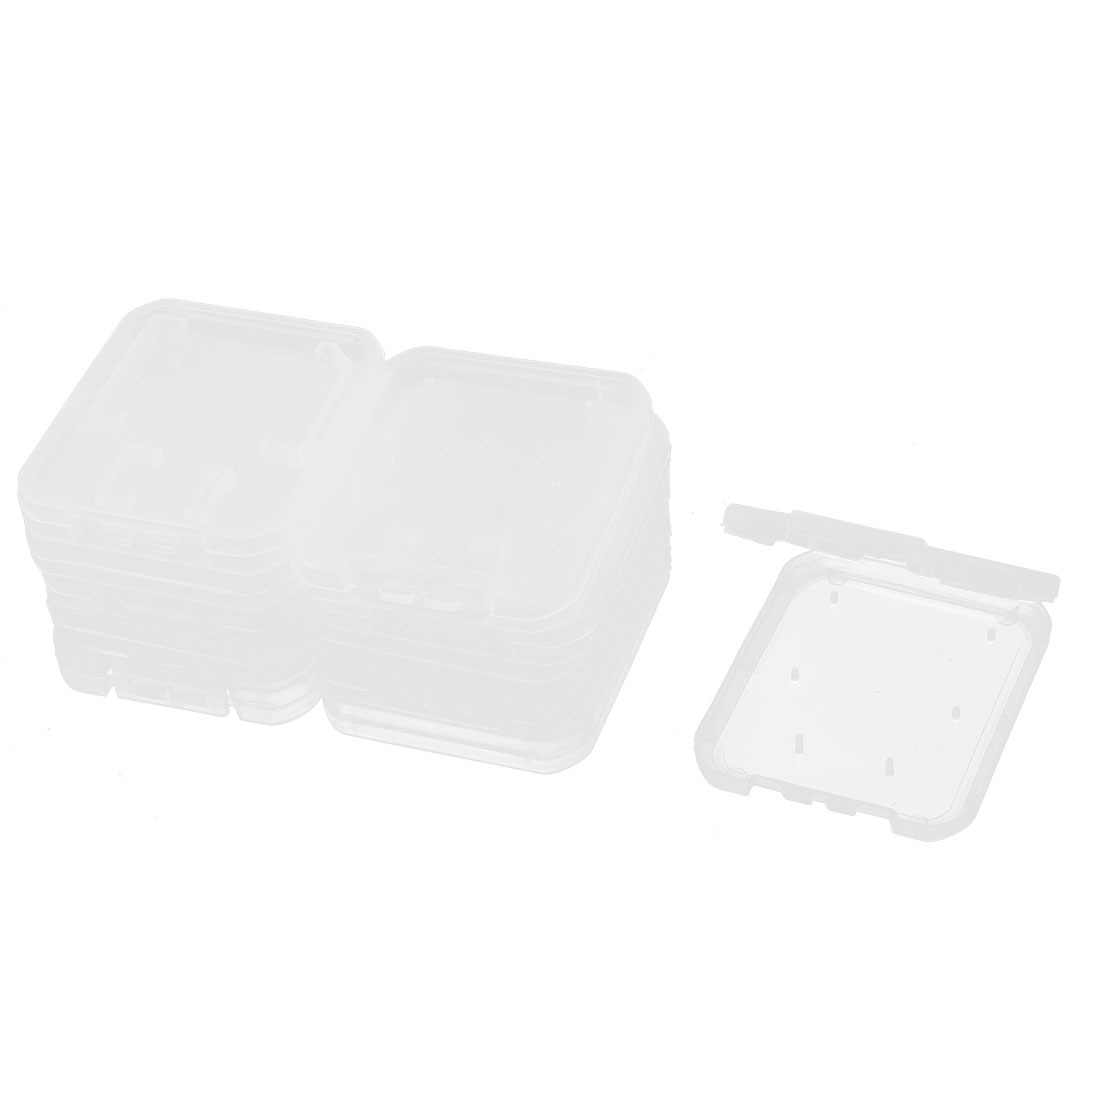 SD MS Micro TF Memory Card Clear White Plastic Storage Box Protective Case Holder 11pcs